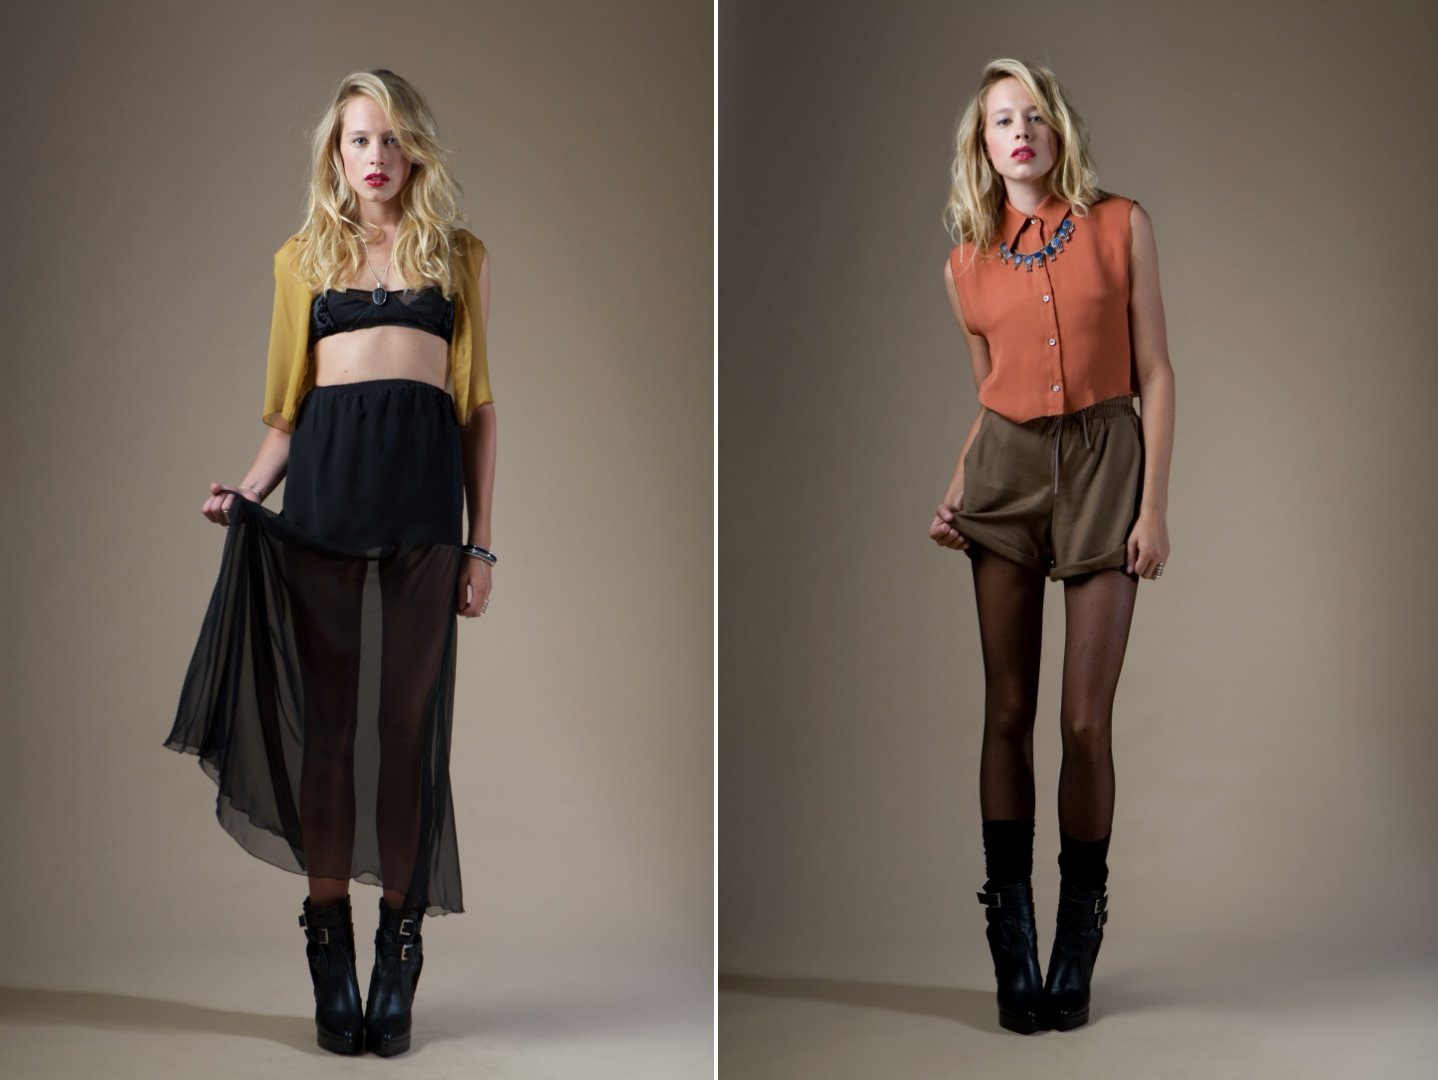 Fashion for a night out 28